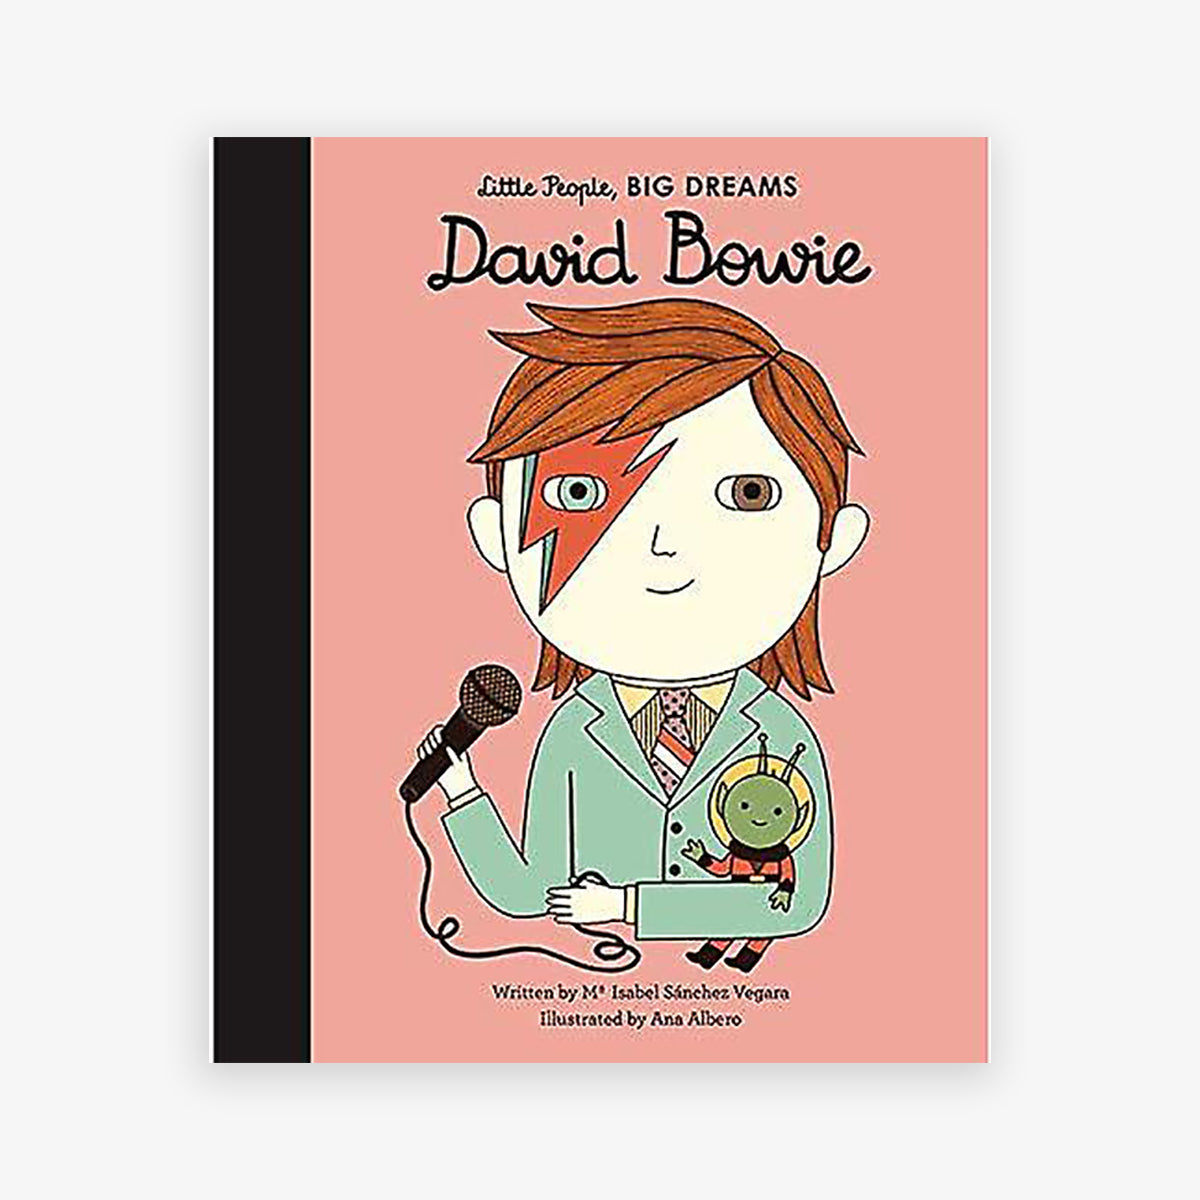 products/Book_LittlePeople_BIGDREAMS-DavidBowie.jpg